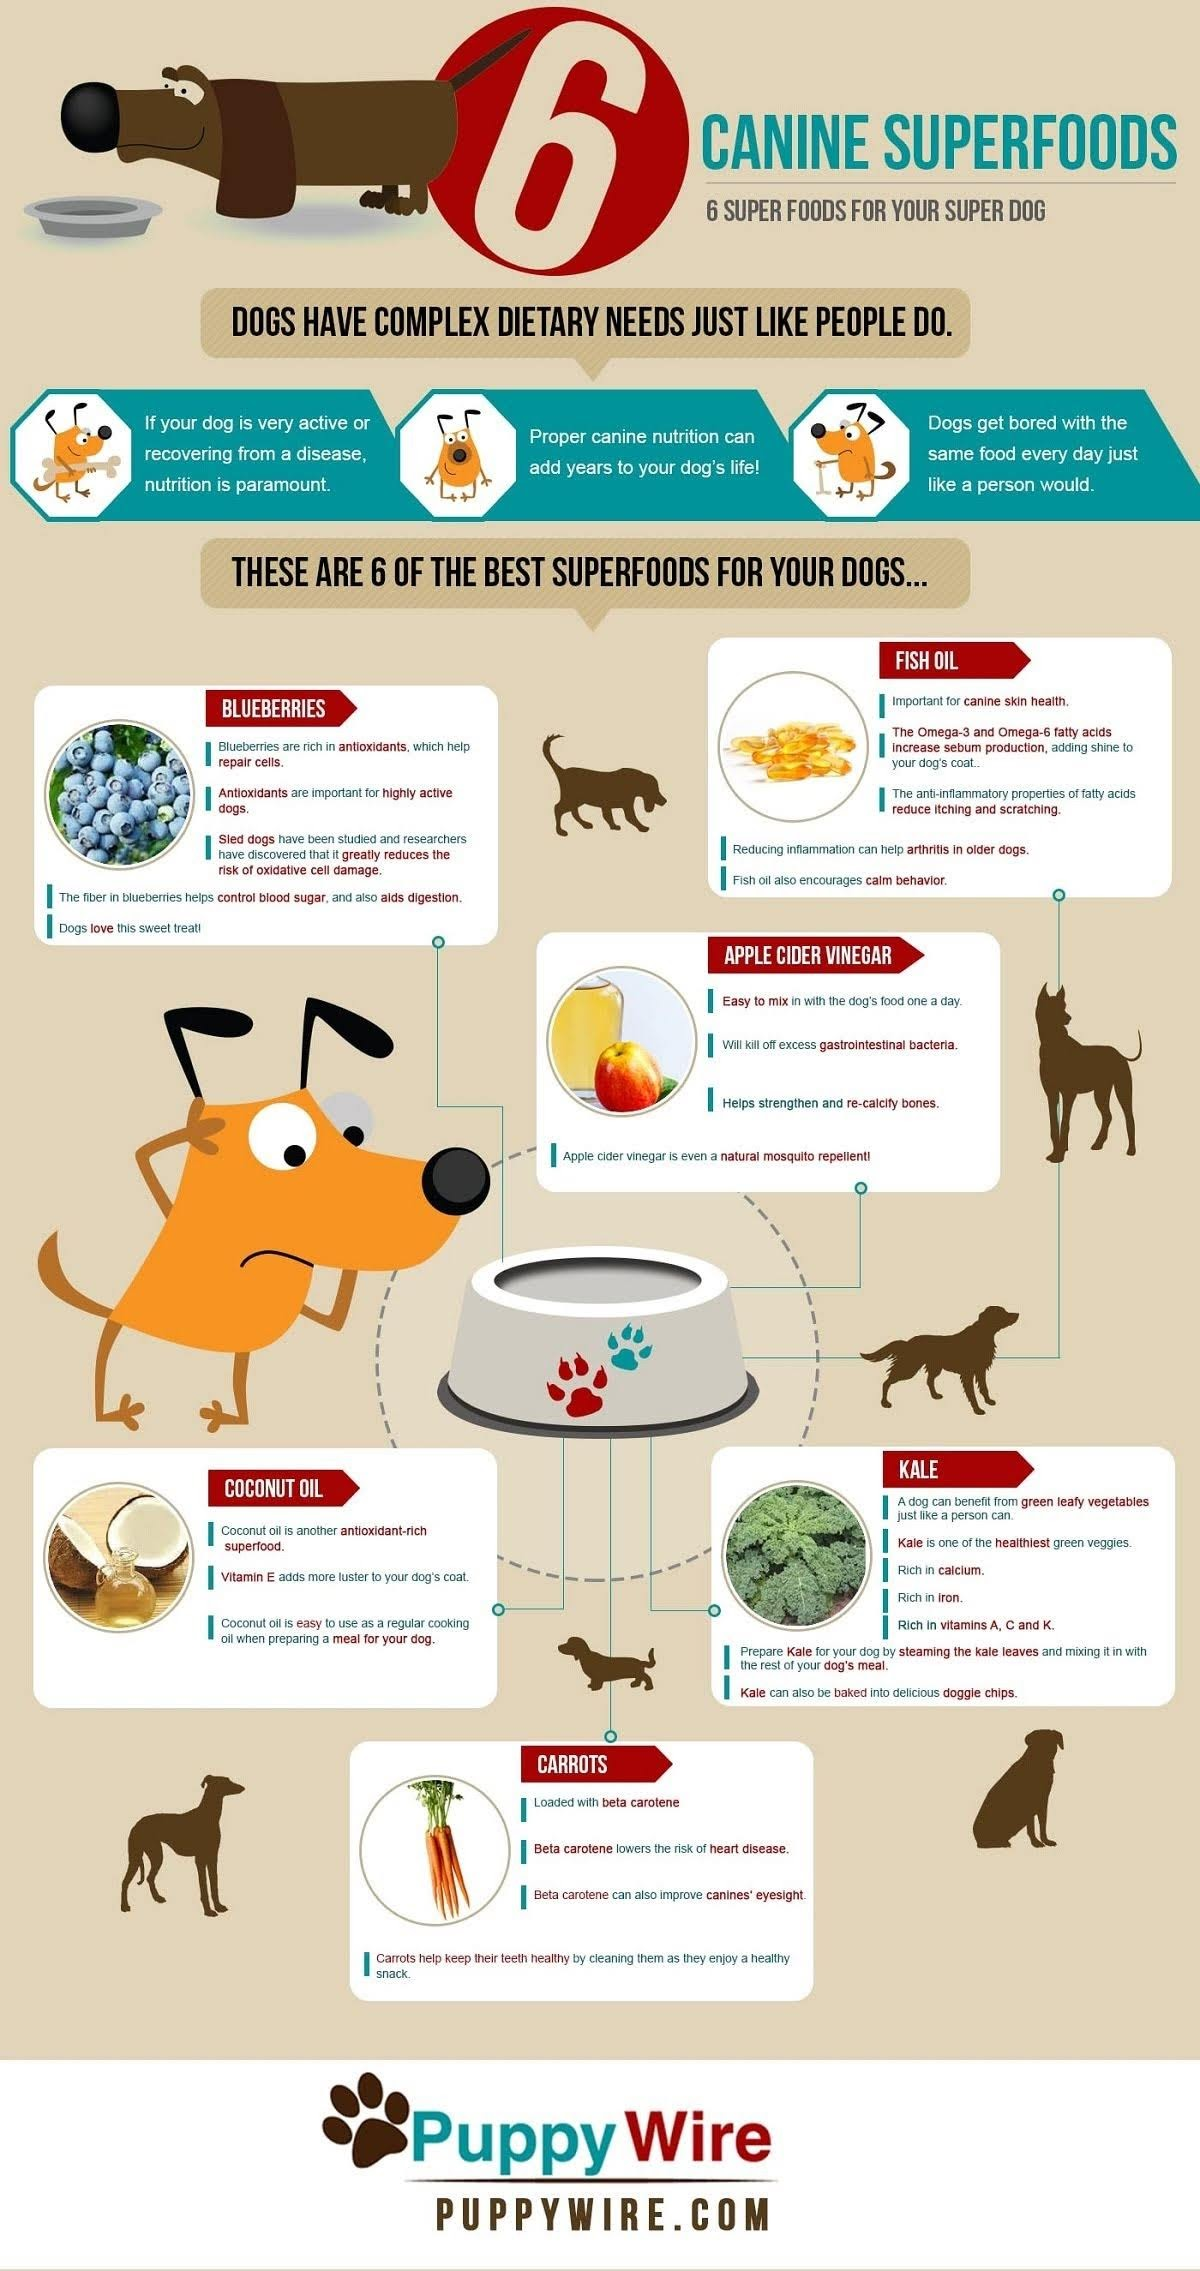 Top 6 Your Super Dog Foods #infographic